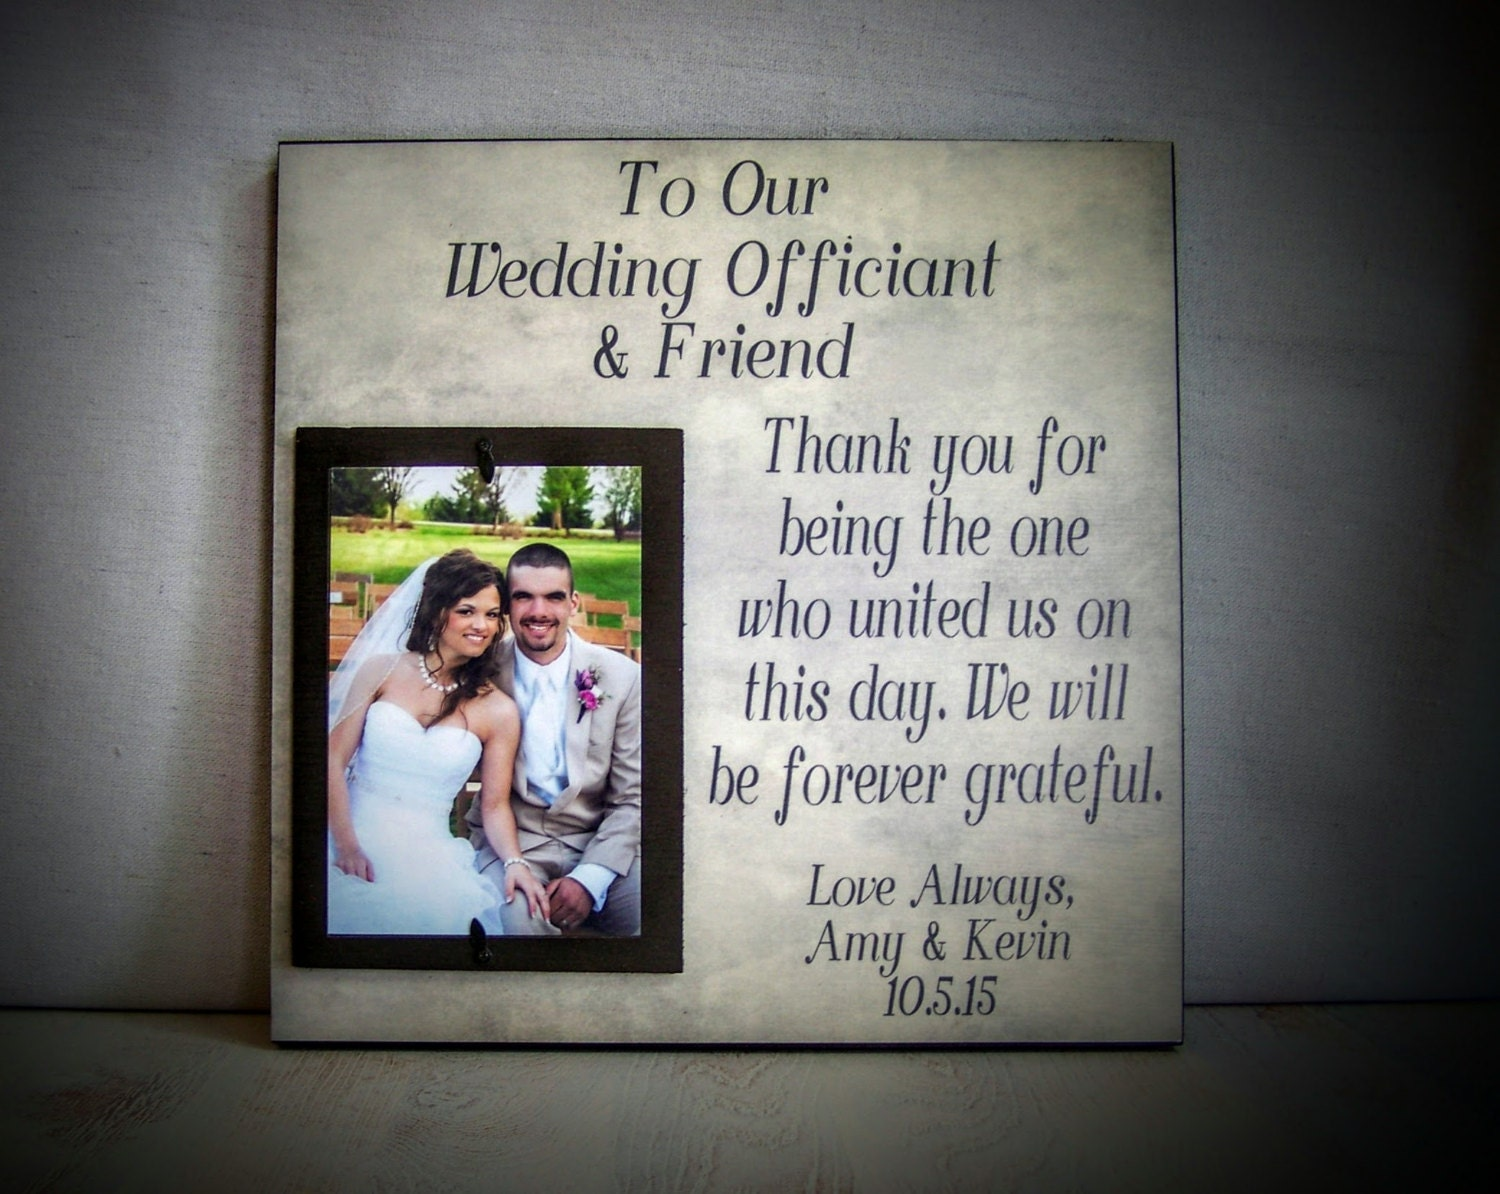 Good Wedding Gifts For Friends: Wedding Officiant Gift : Perfect For The Friend & Wedding